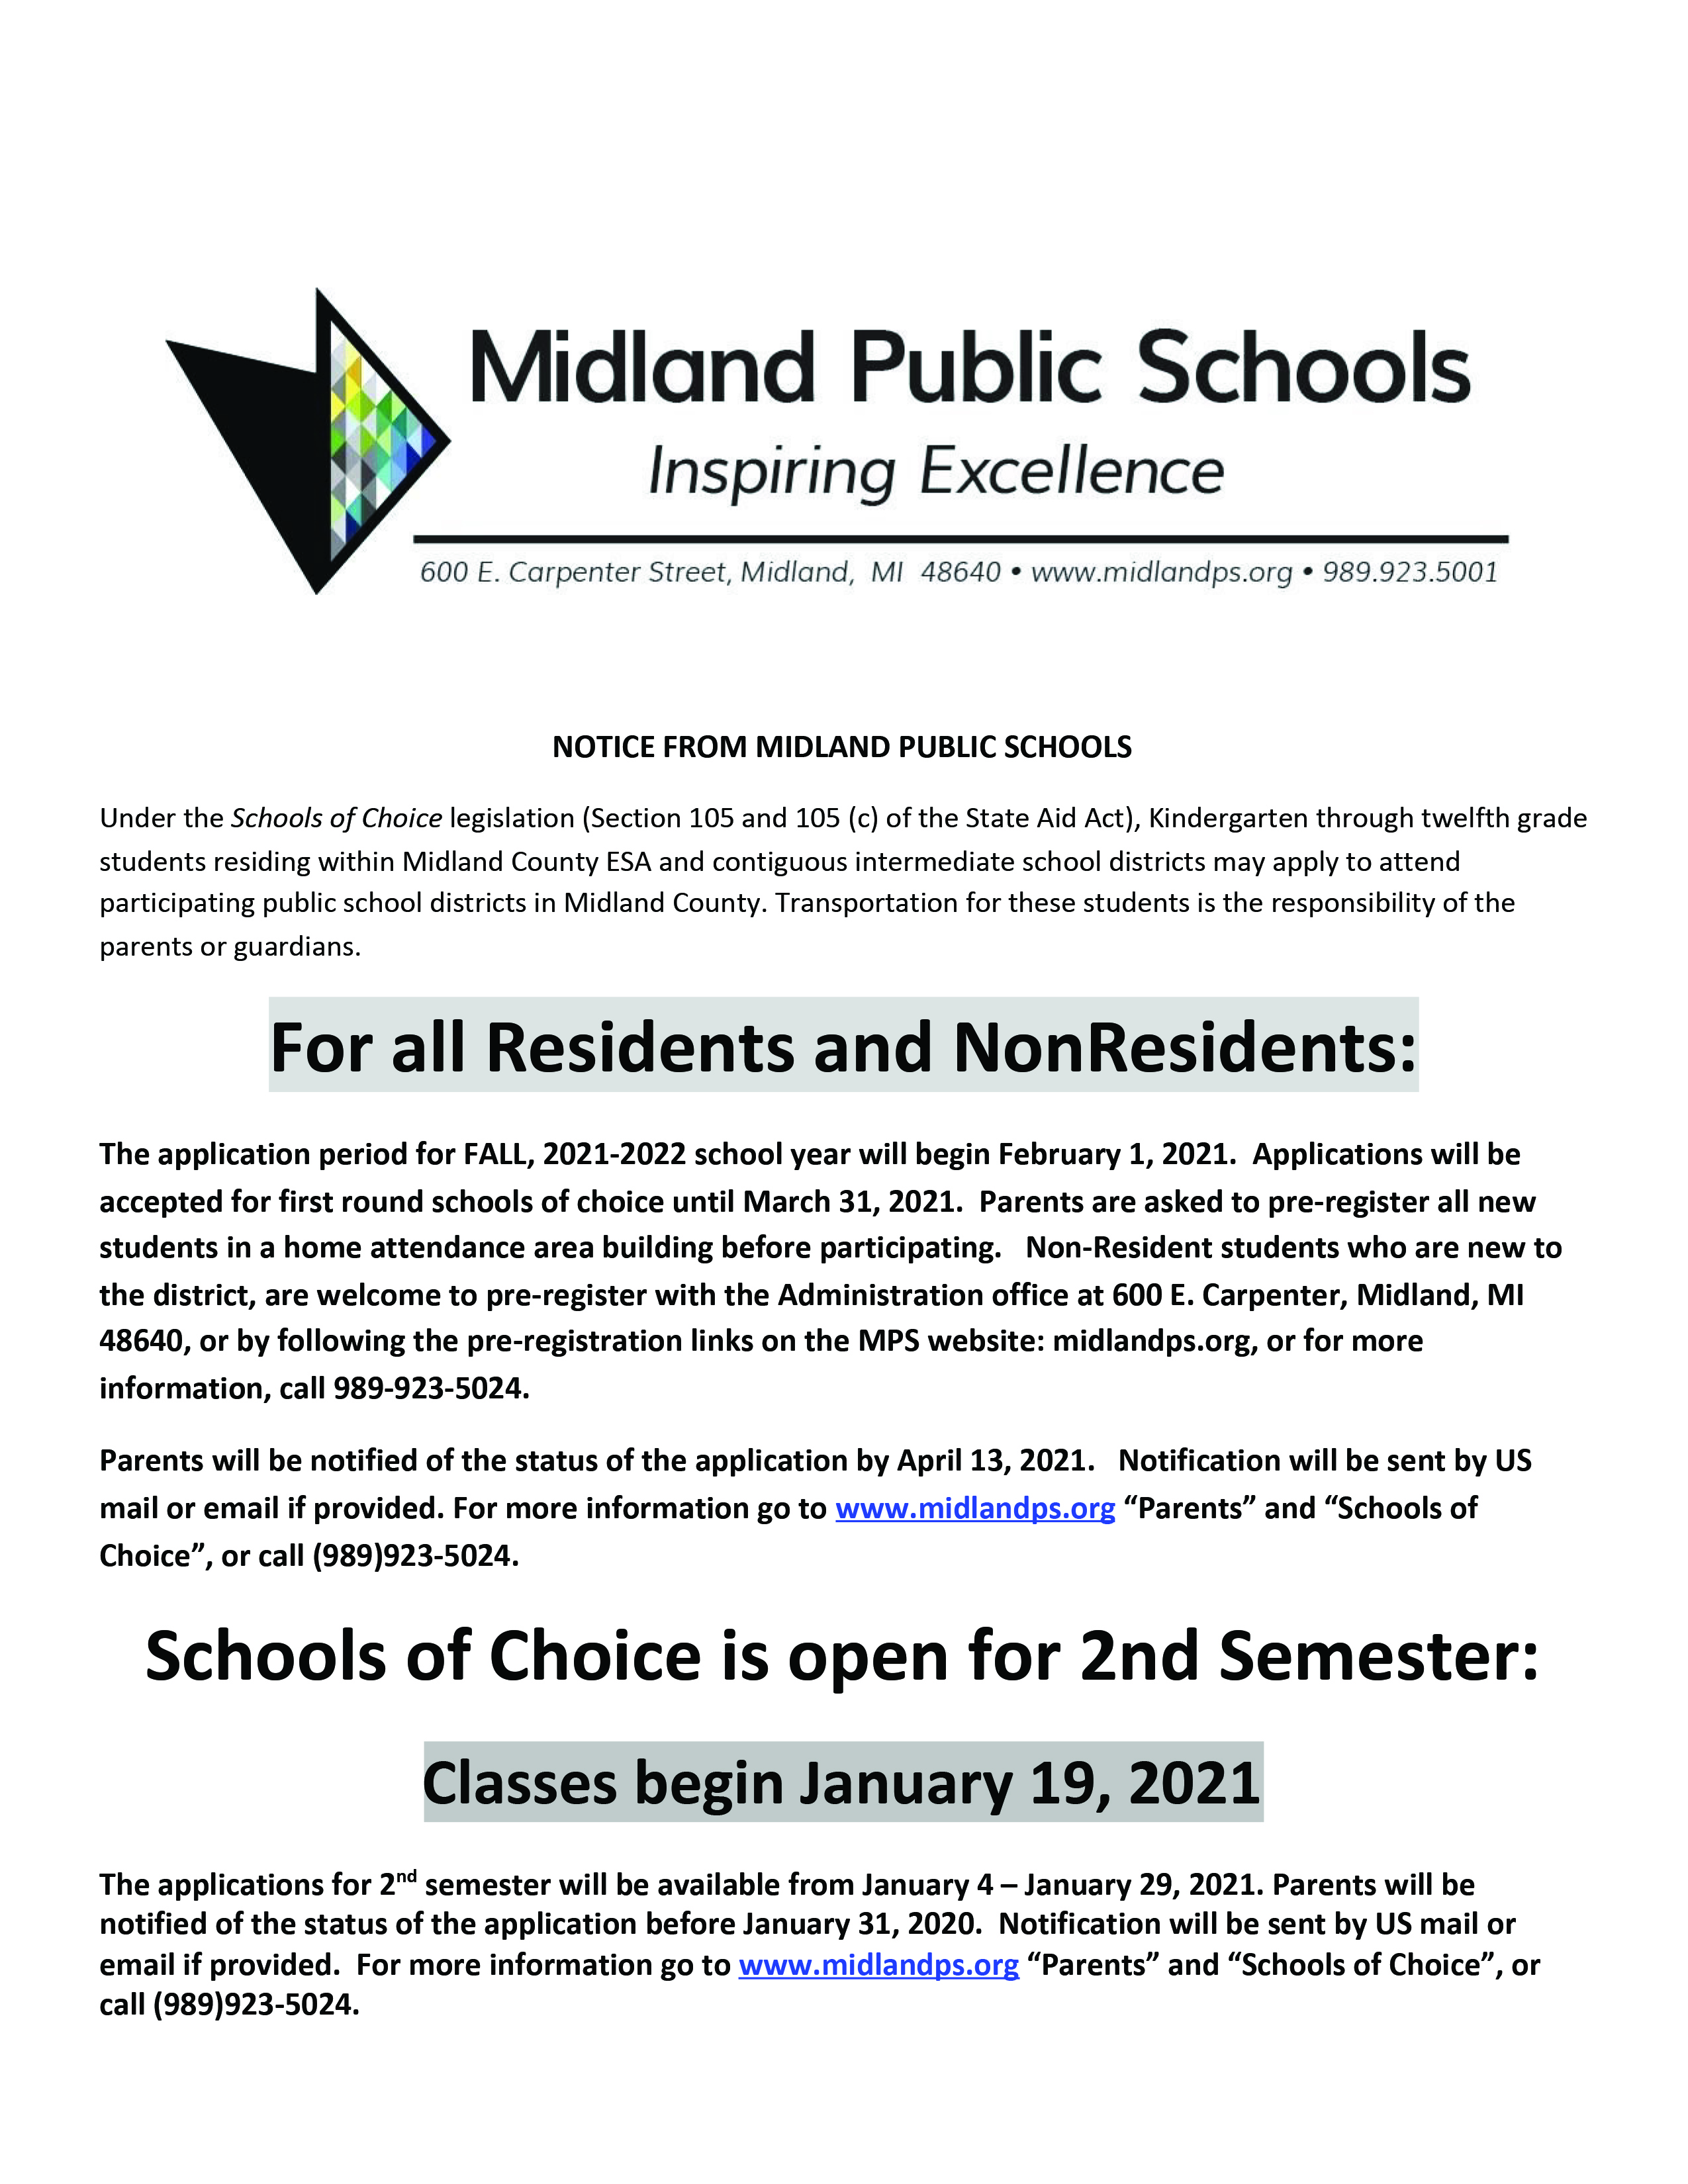 School Of Choice Flyer